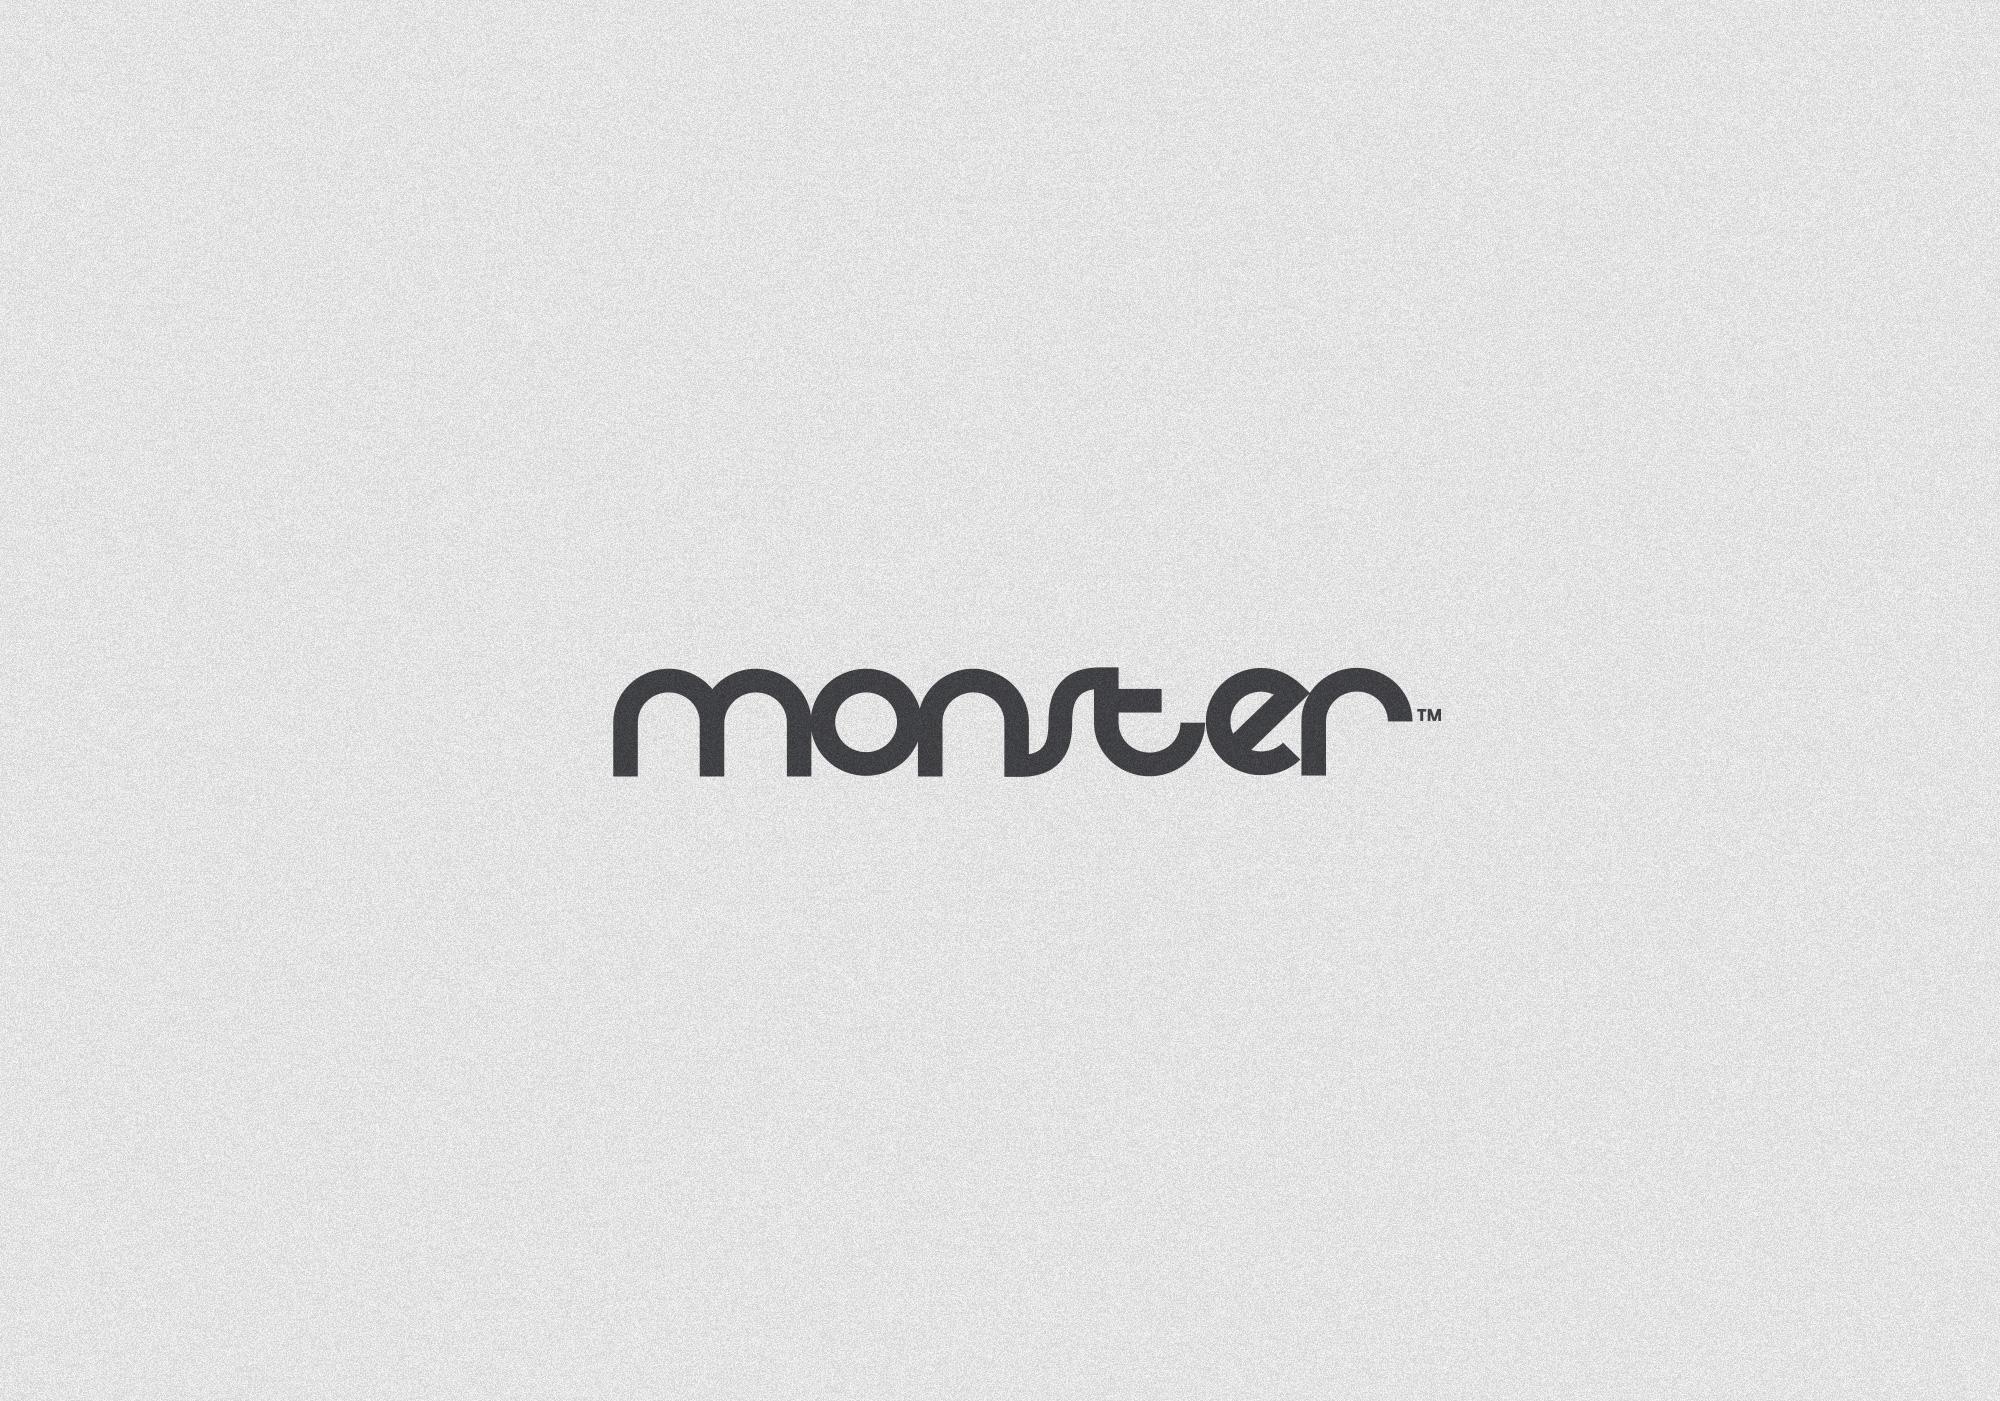 Monster-Logo-High-1-2.jpg